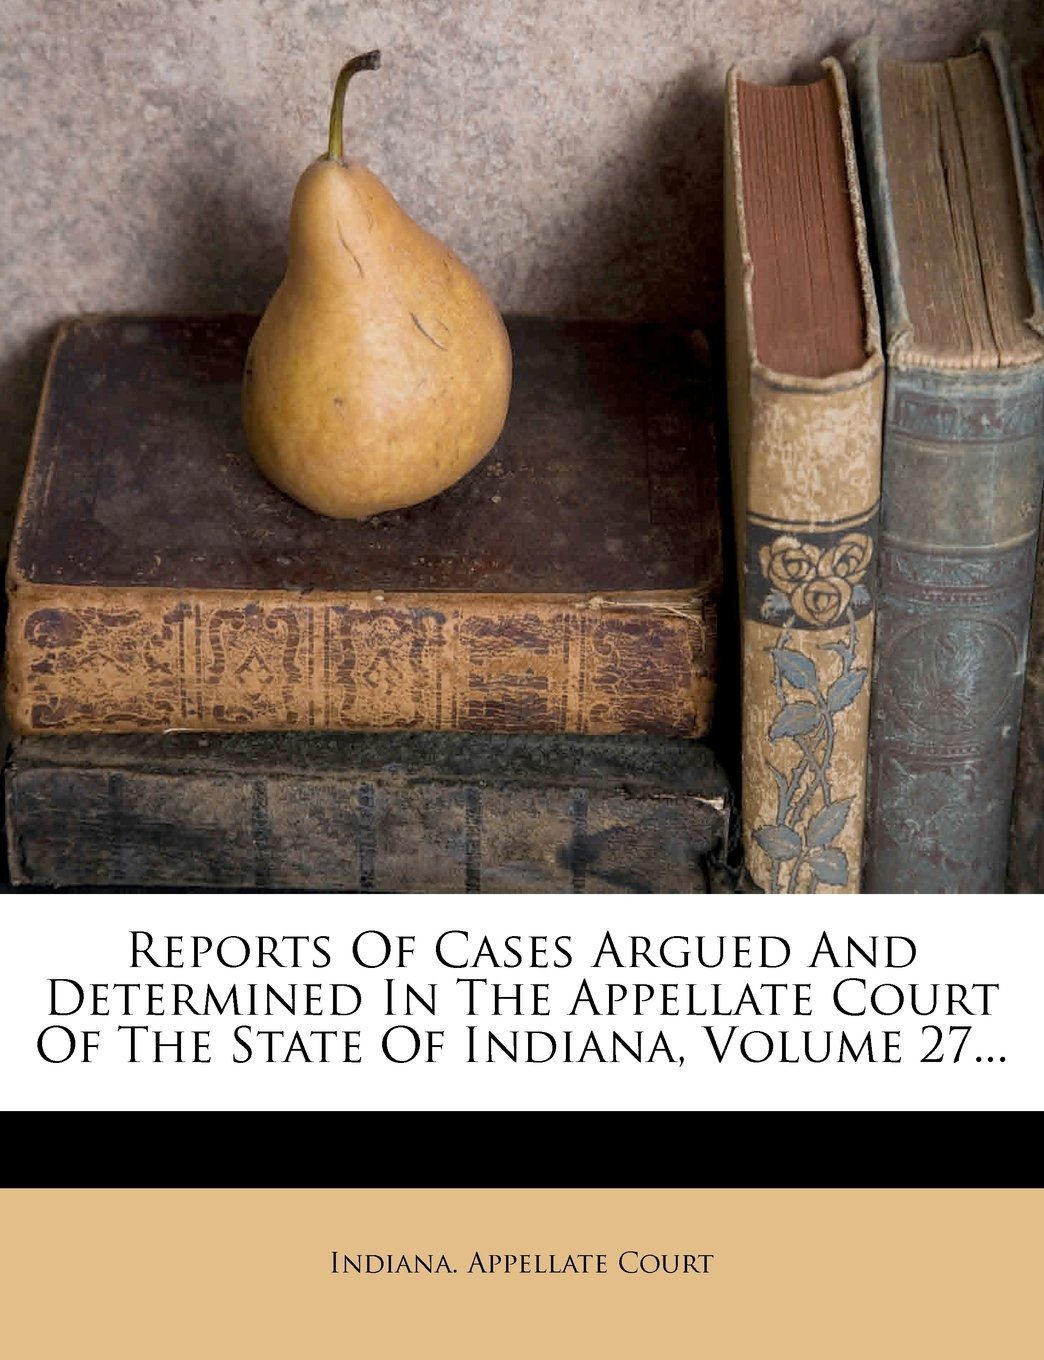 Reports Of Cases Argued And Determined In The Appellate Court Of The State Of Indiana, Volume 27... PDF